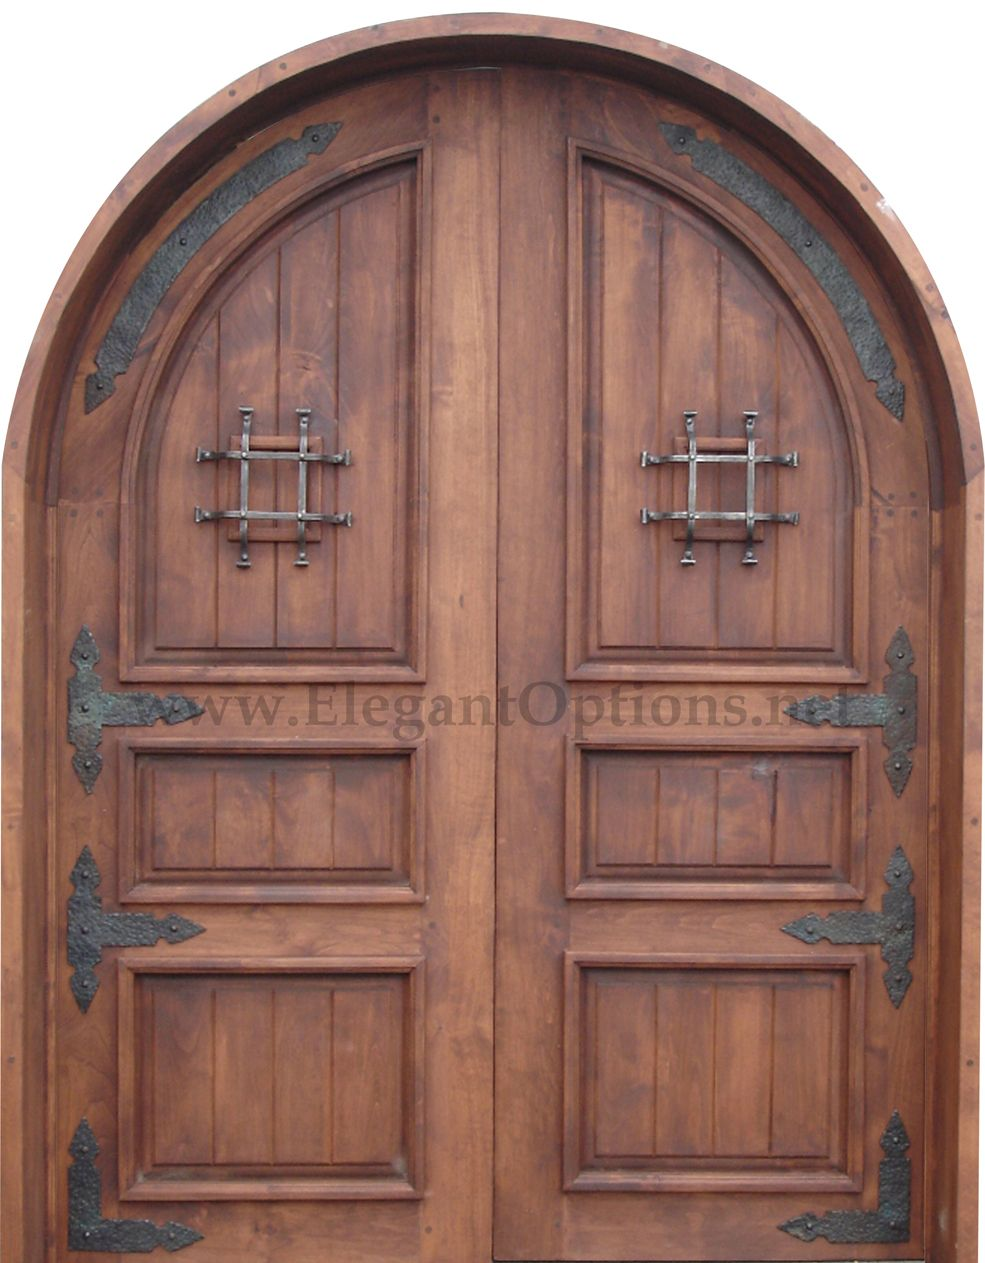 Ordinaire Spanish Style Front Door...maybe Something Similar Without The Arch?